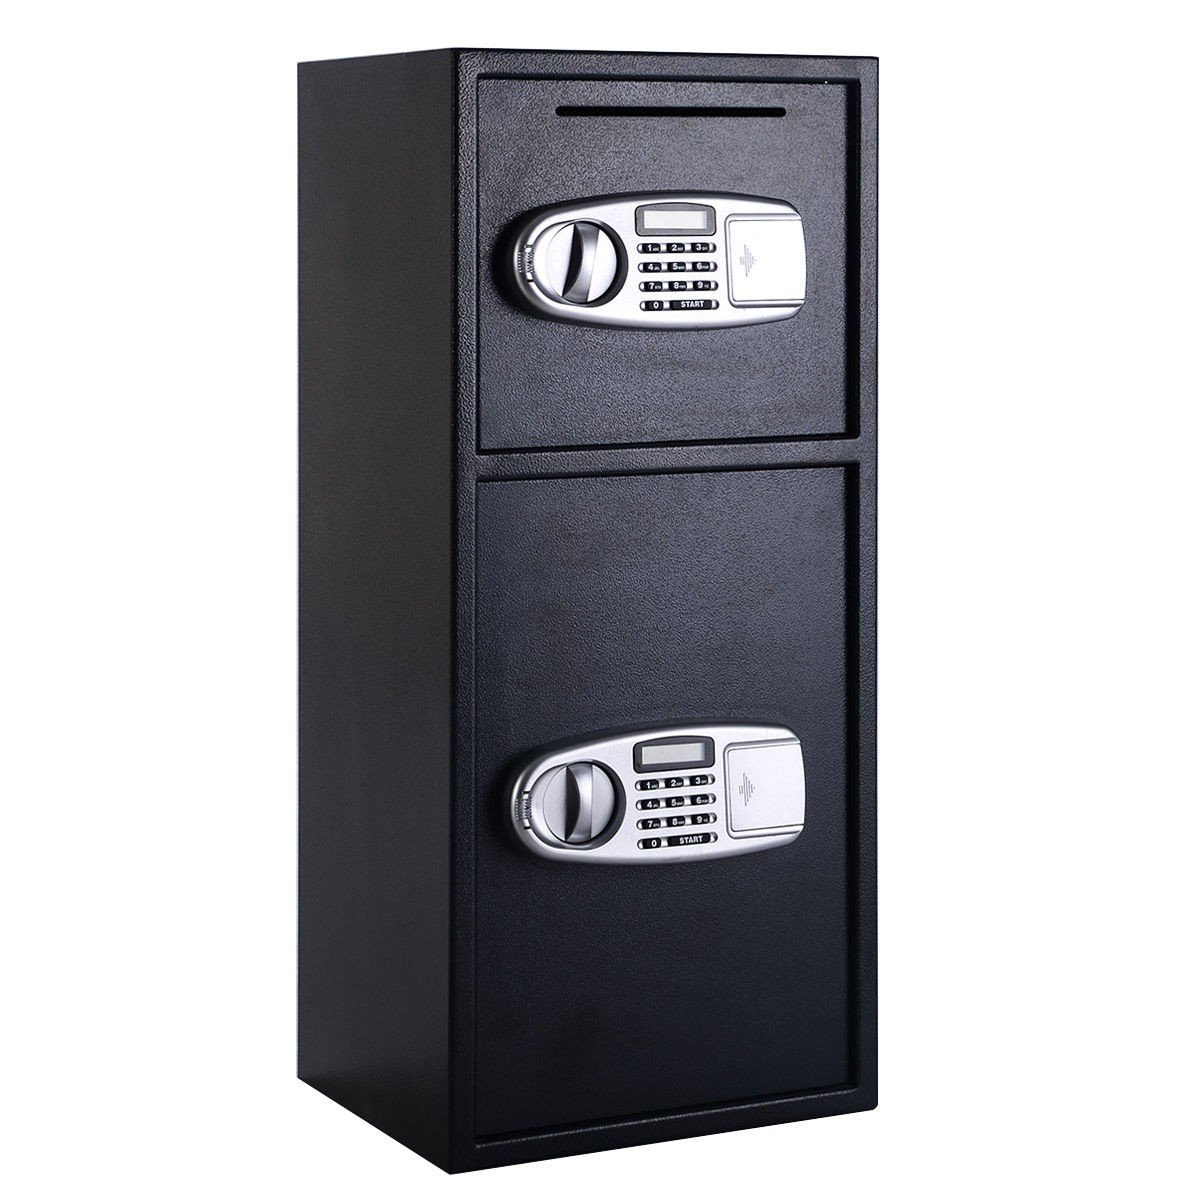 Double Door Digital Safe Depository Drop Box Safes Cash Office Security Lock New - Constructed with Solid Steel to Resist Hand and Mechanical Tool Attacks - Easy to Operate and Program